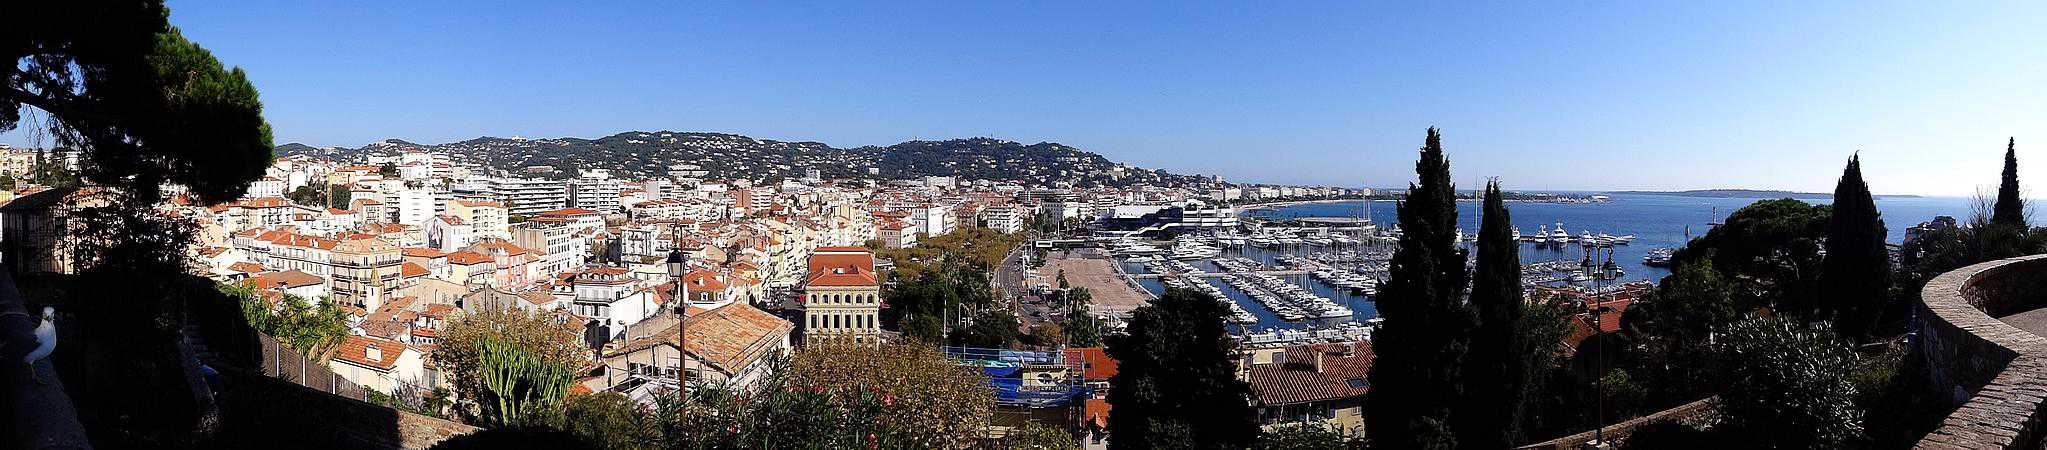 Cannes - Panorama